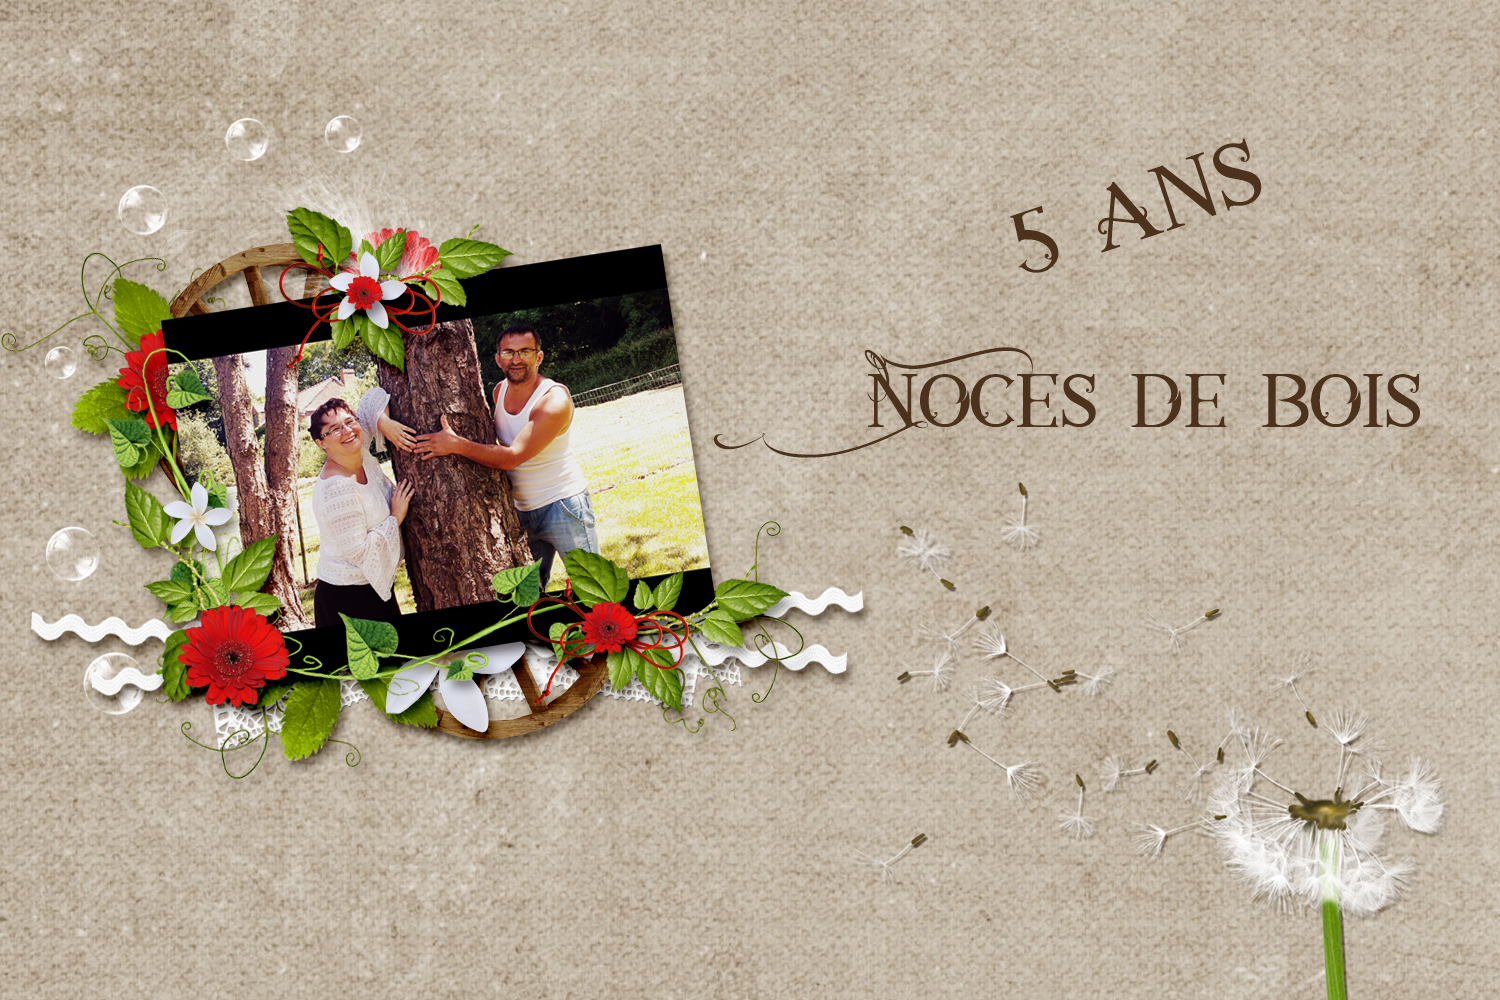 5 ans mariage